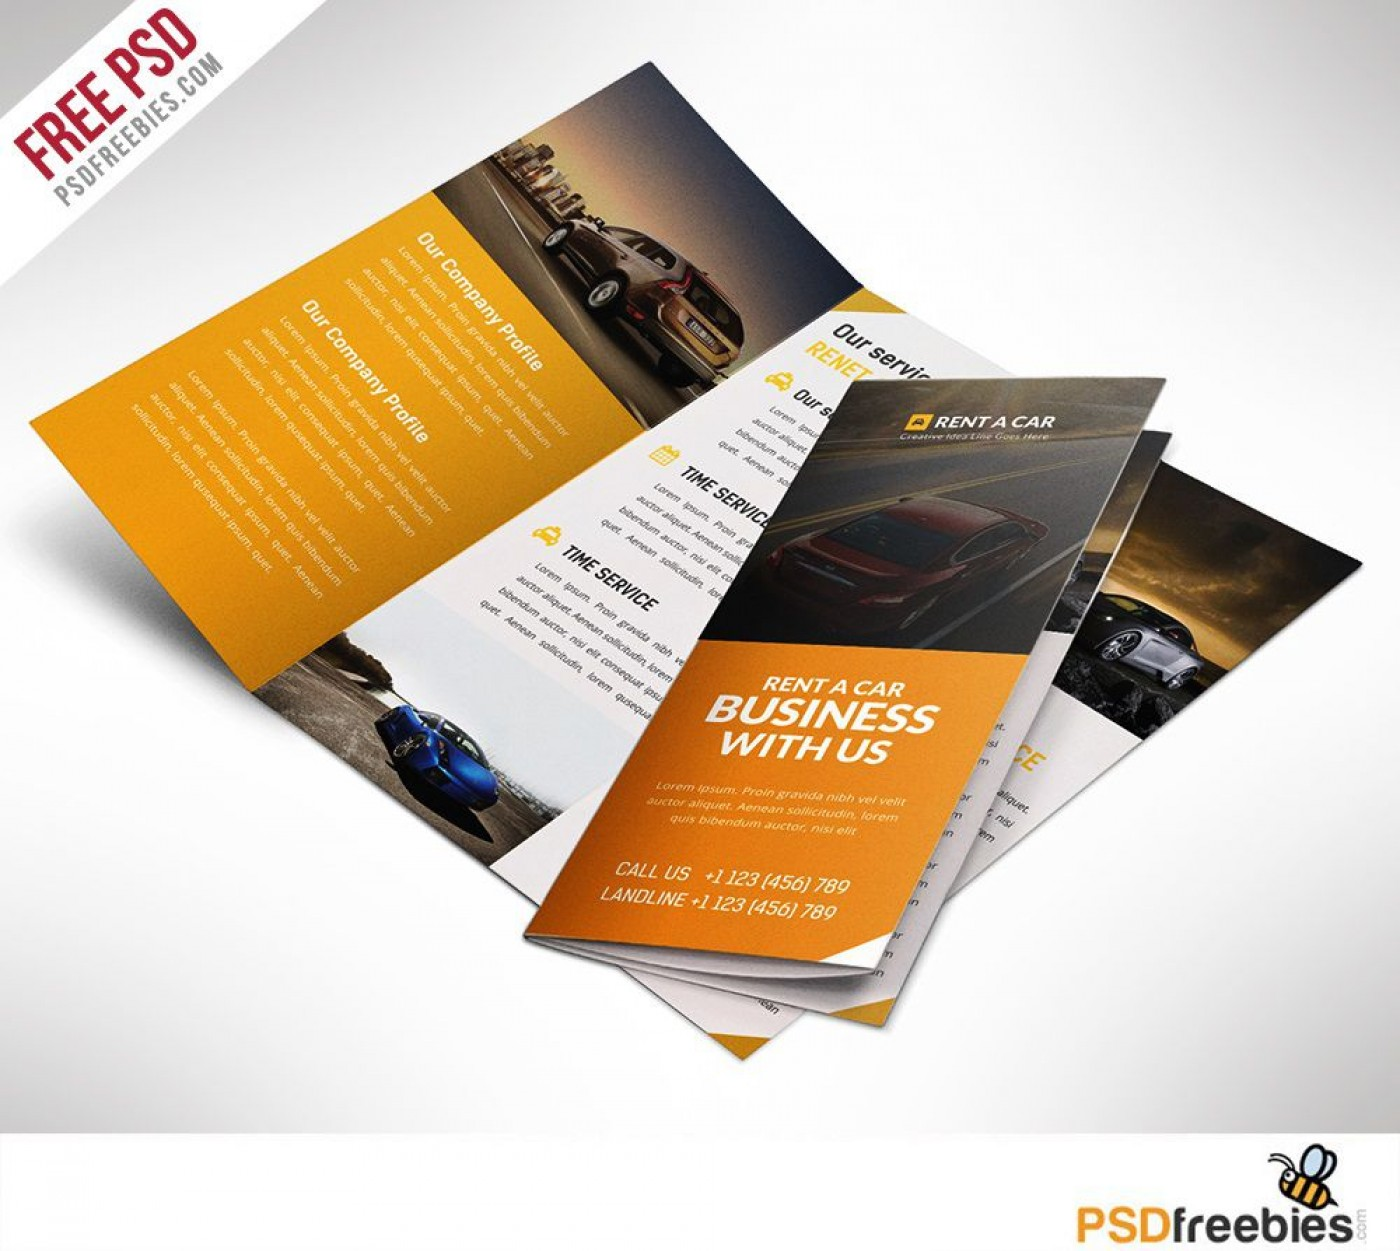 003 Fascinating Adobe Photoshop Brochure Template Free Download Picture 1400